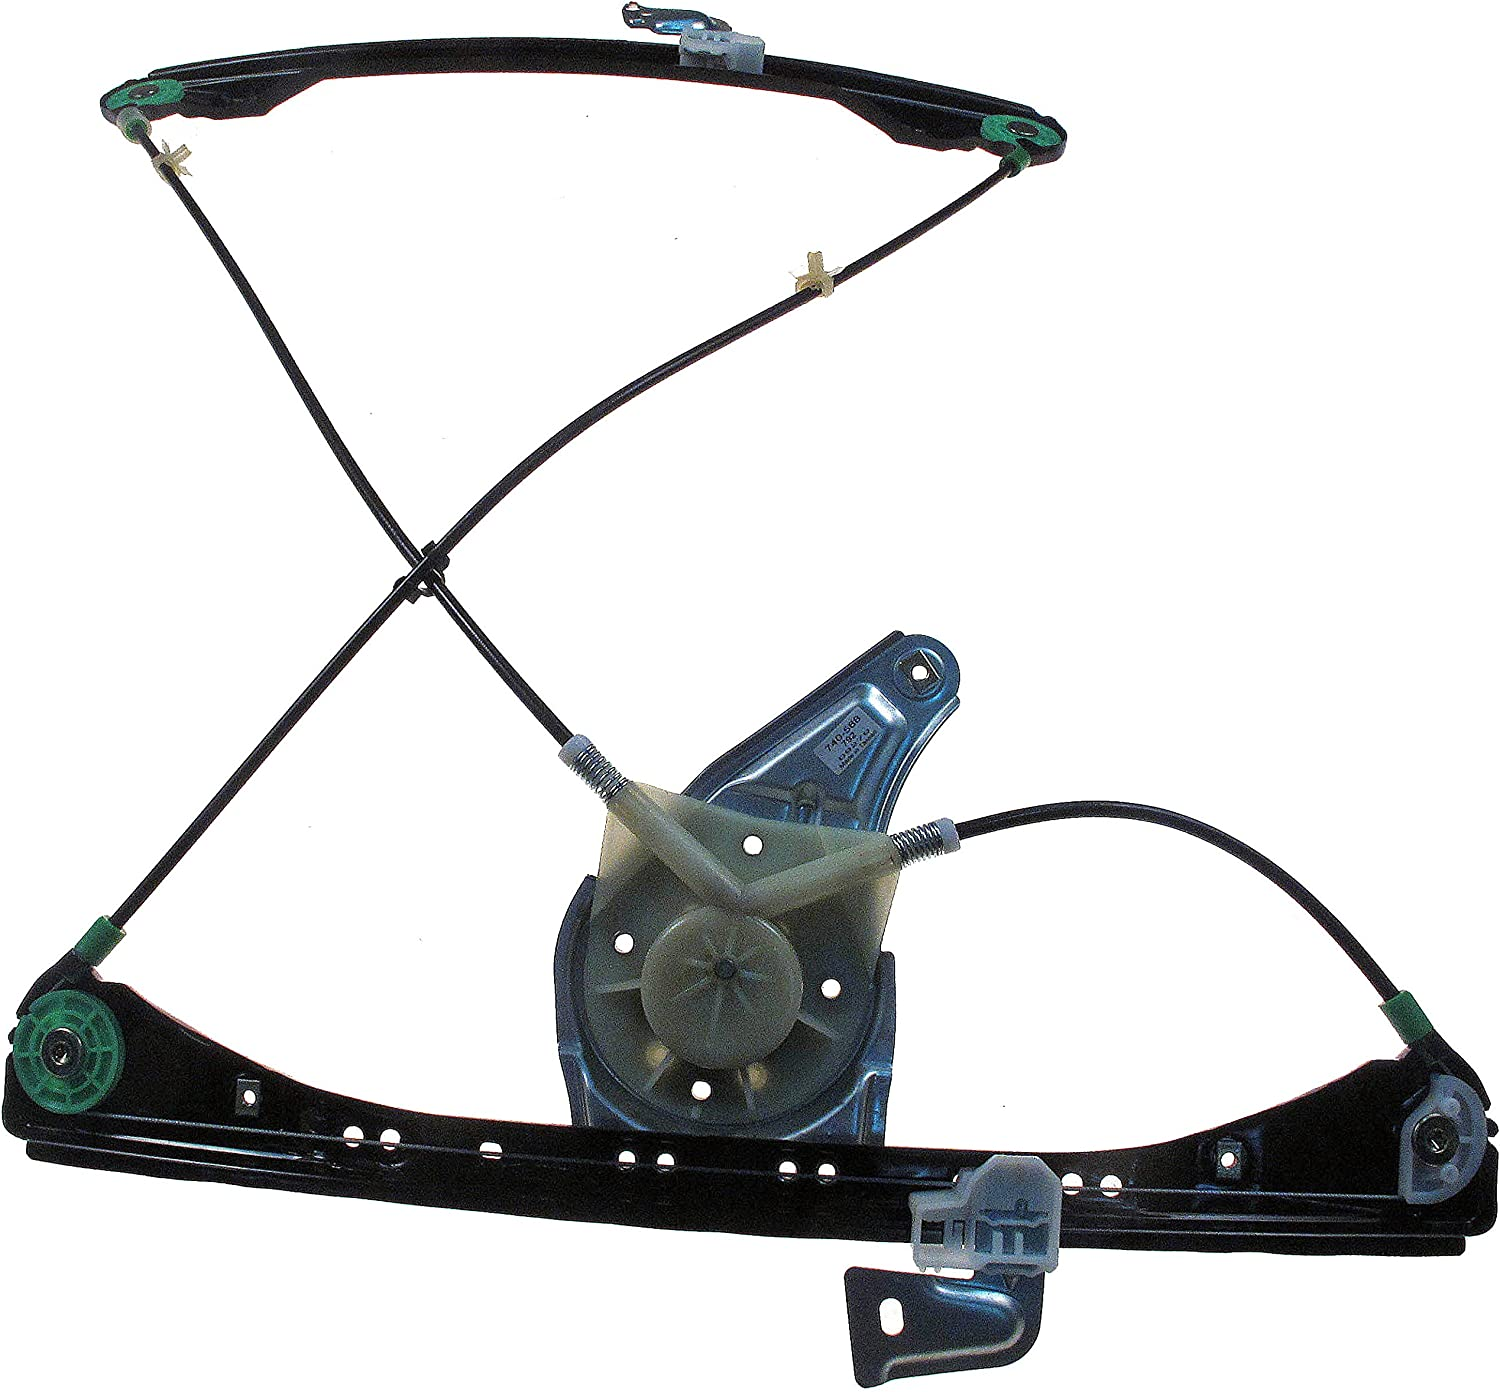 Dorman 740-640 Front Passenger Side Power Window Regulator for Select Oldsmobile Pontiac Models